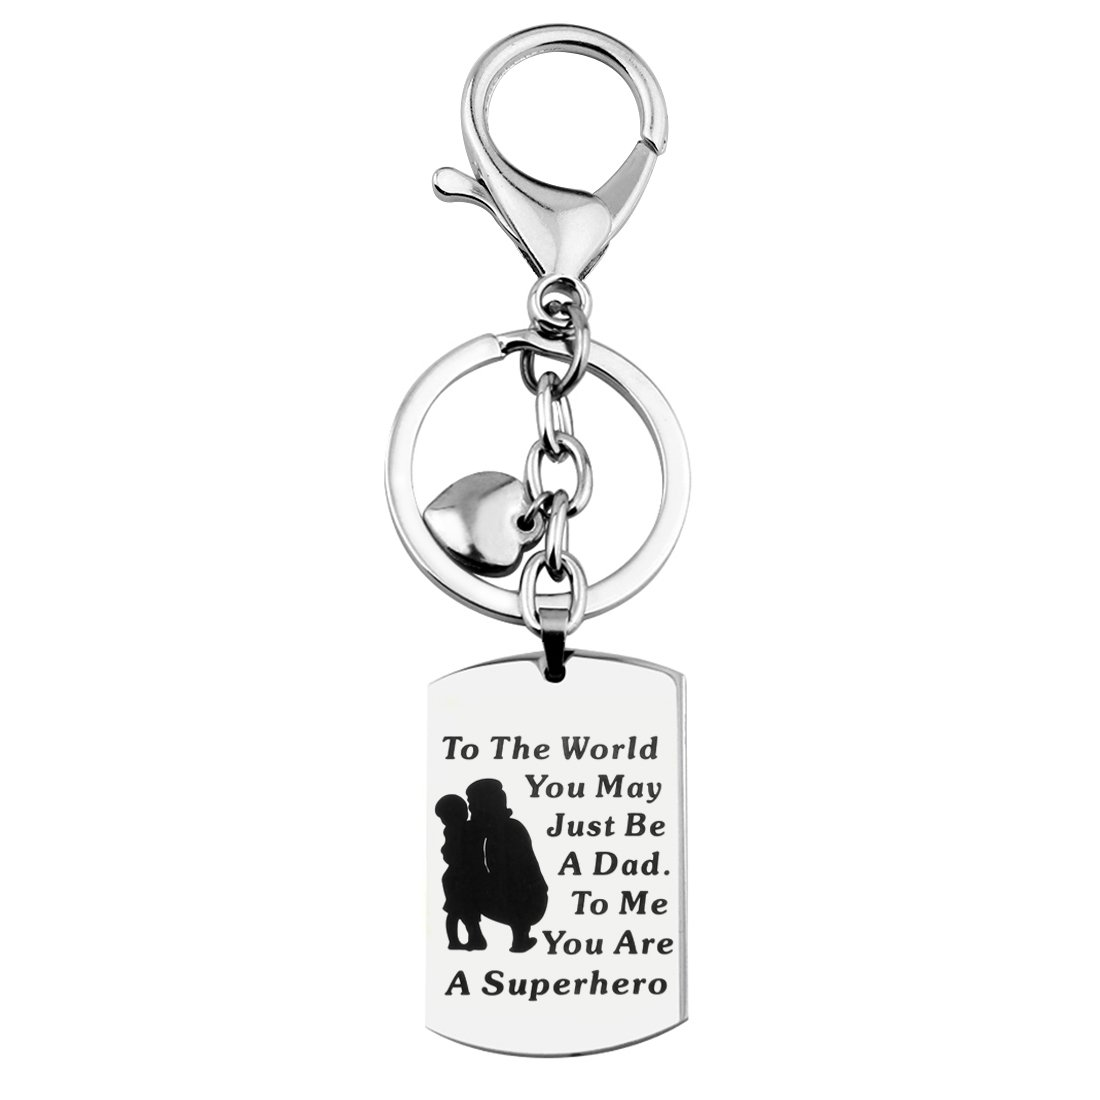 amazon best gifts for son to my son dog tag necklace keychain  amazon best gifts for son to my son dog tag necklace keychain personalized father son pendant father to son gift to my dad keychain jewelry